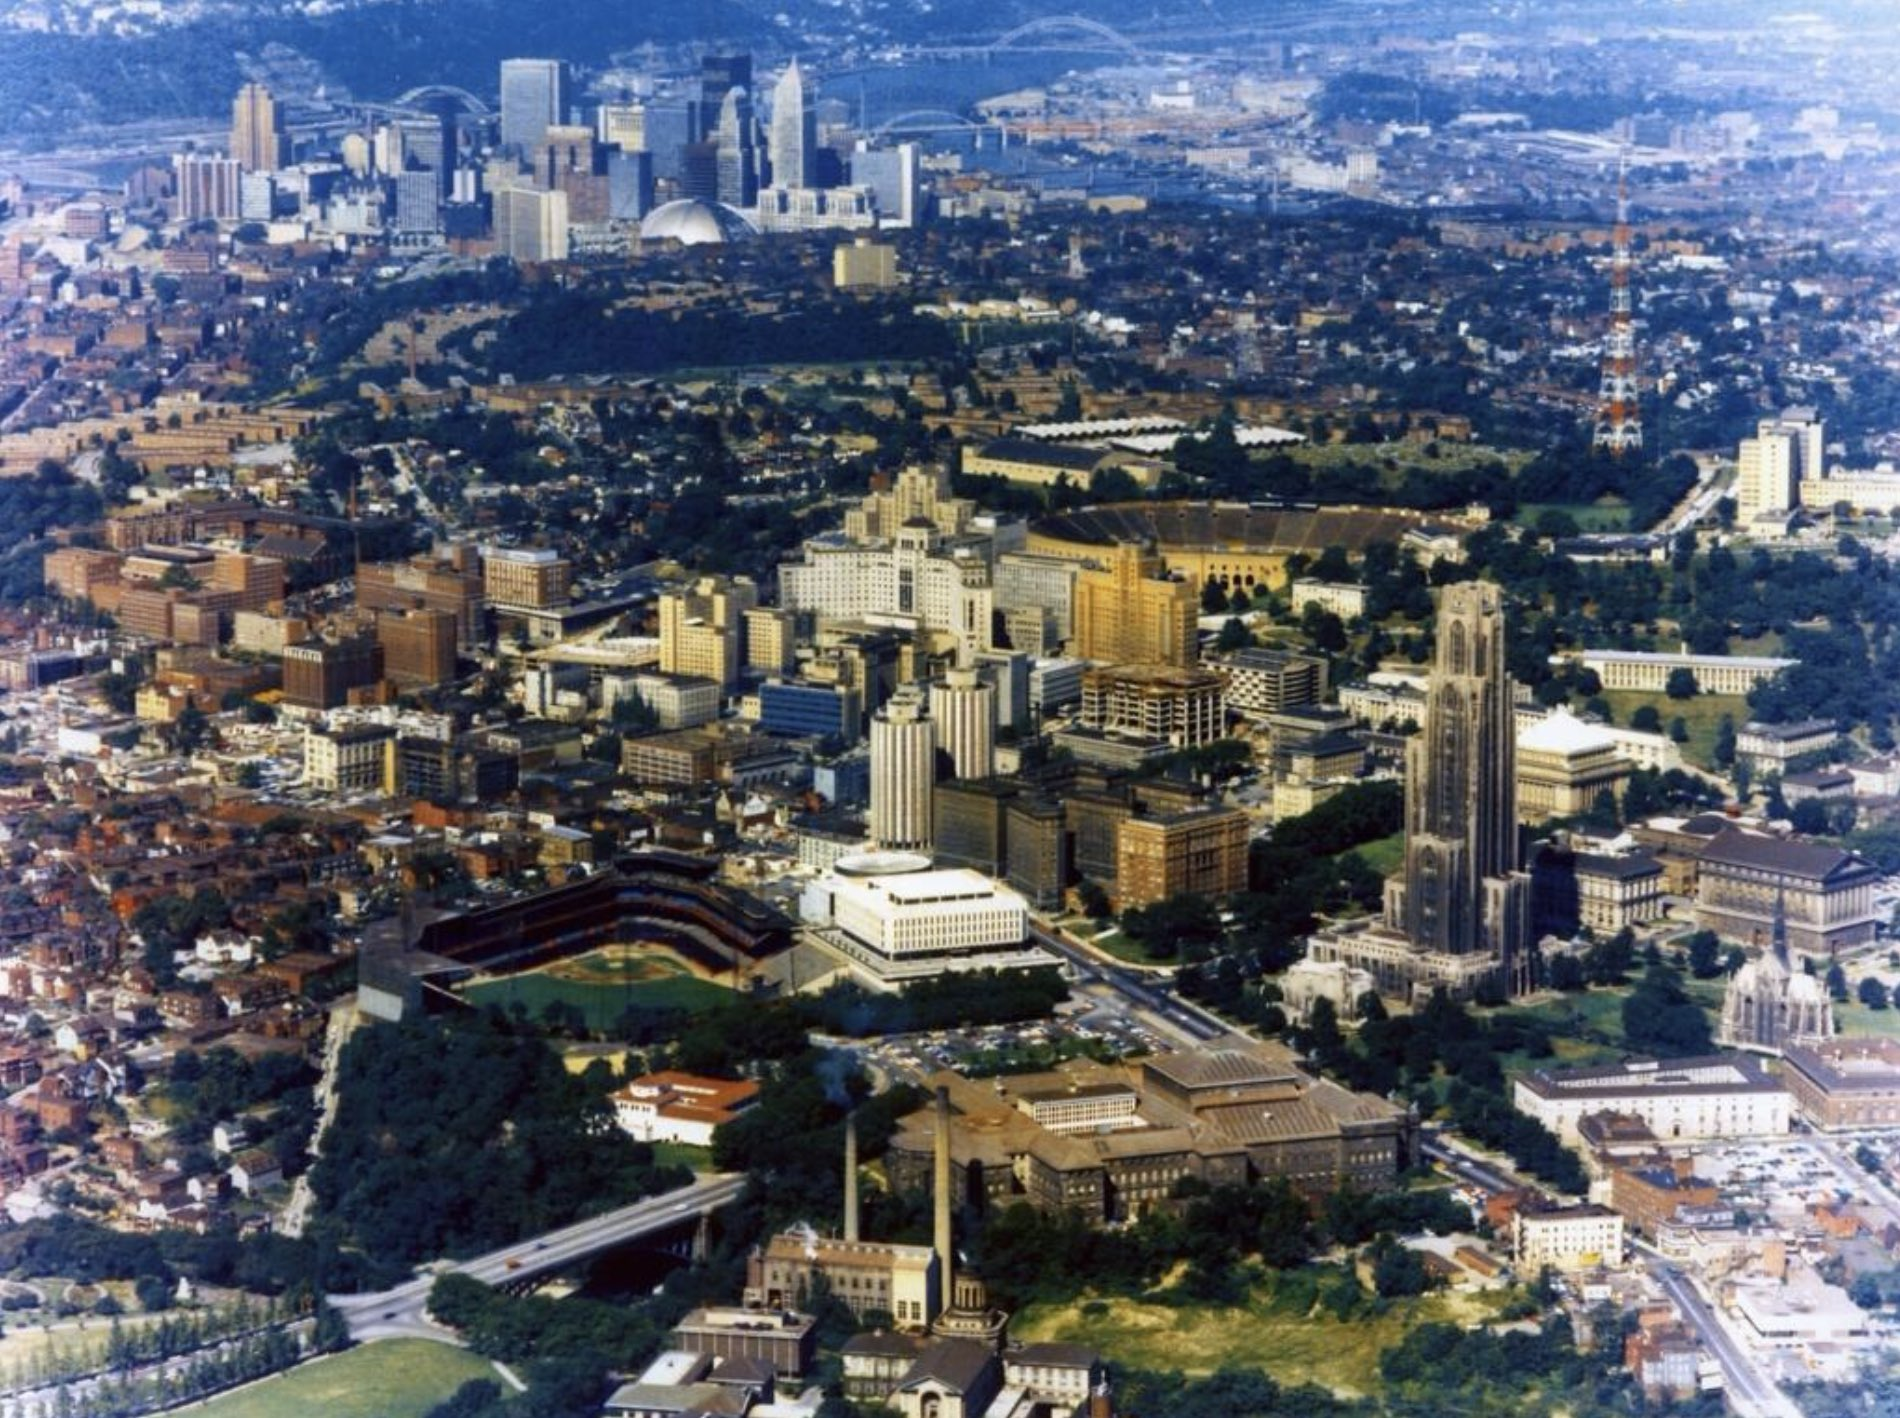 The most amazing late 1960s shot of Forbes Field, U of PITT, and Pittsburgh you will ever see. https://t.co/ThRROzr5H0